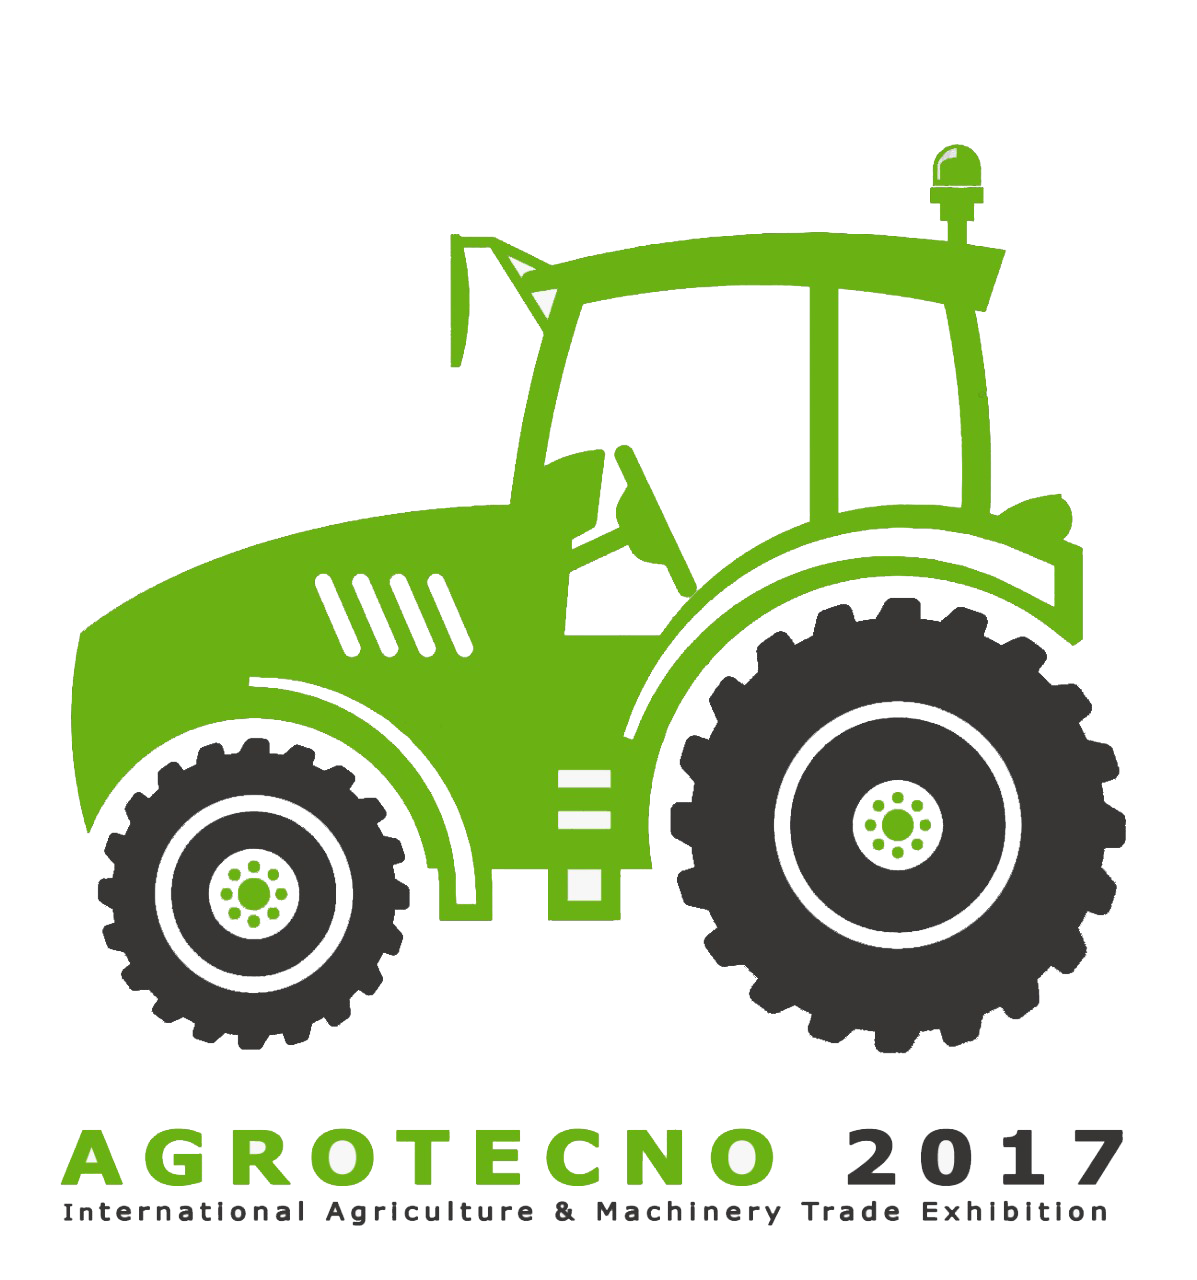 Farmers clipart agriculture sector. Agrotecno east africa logo